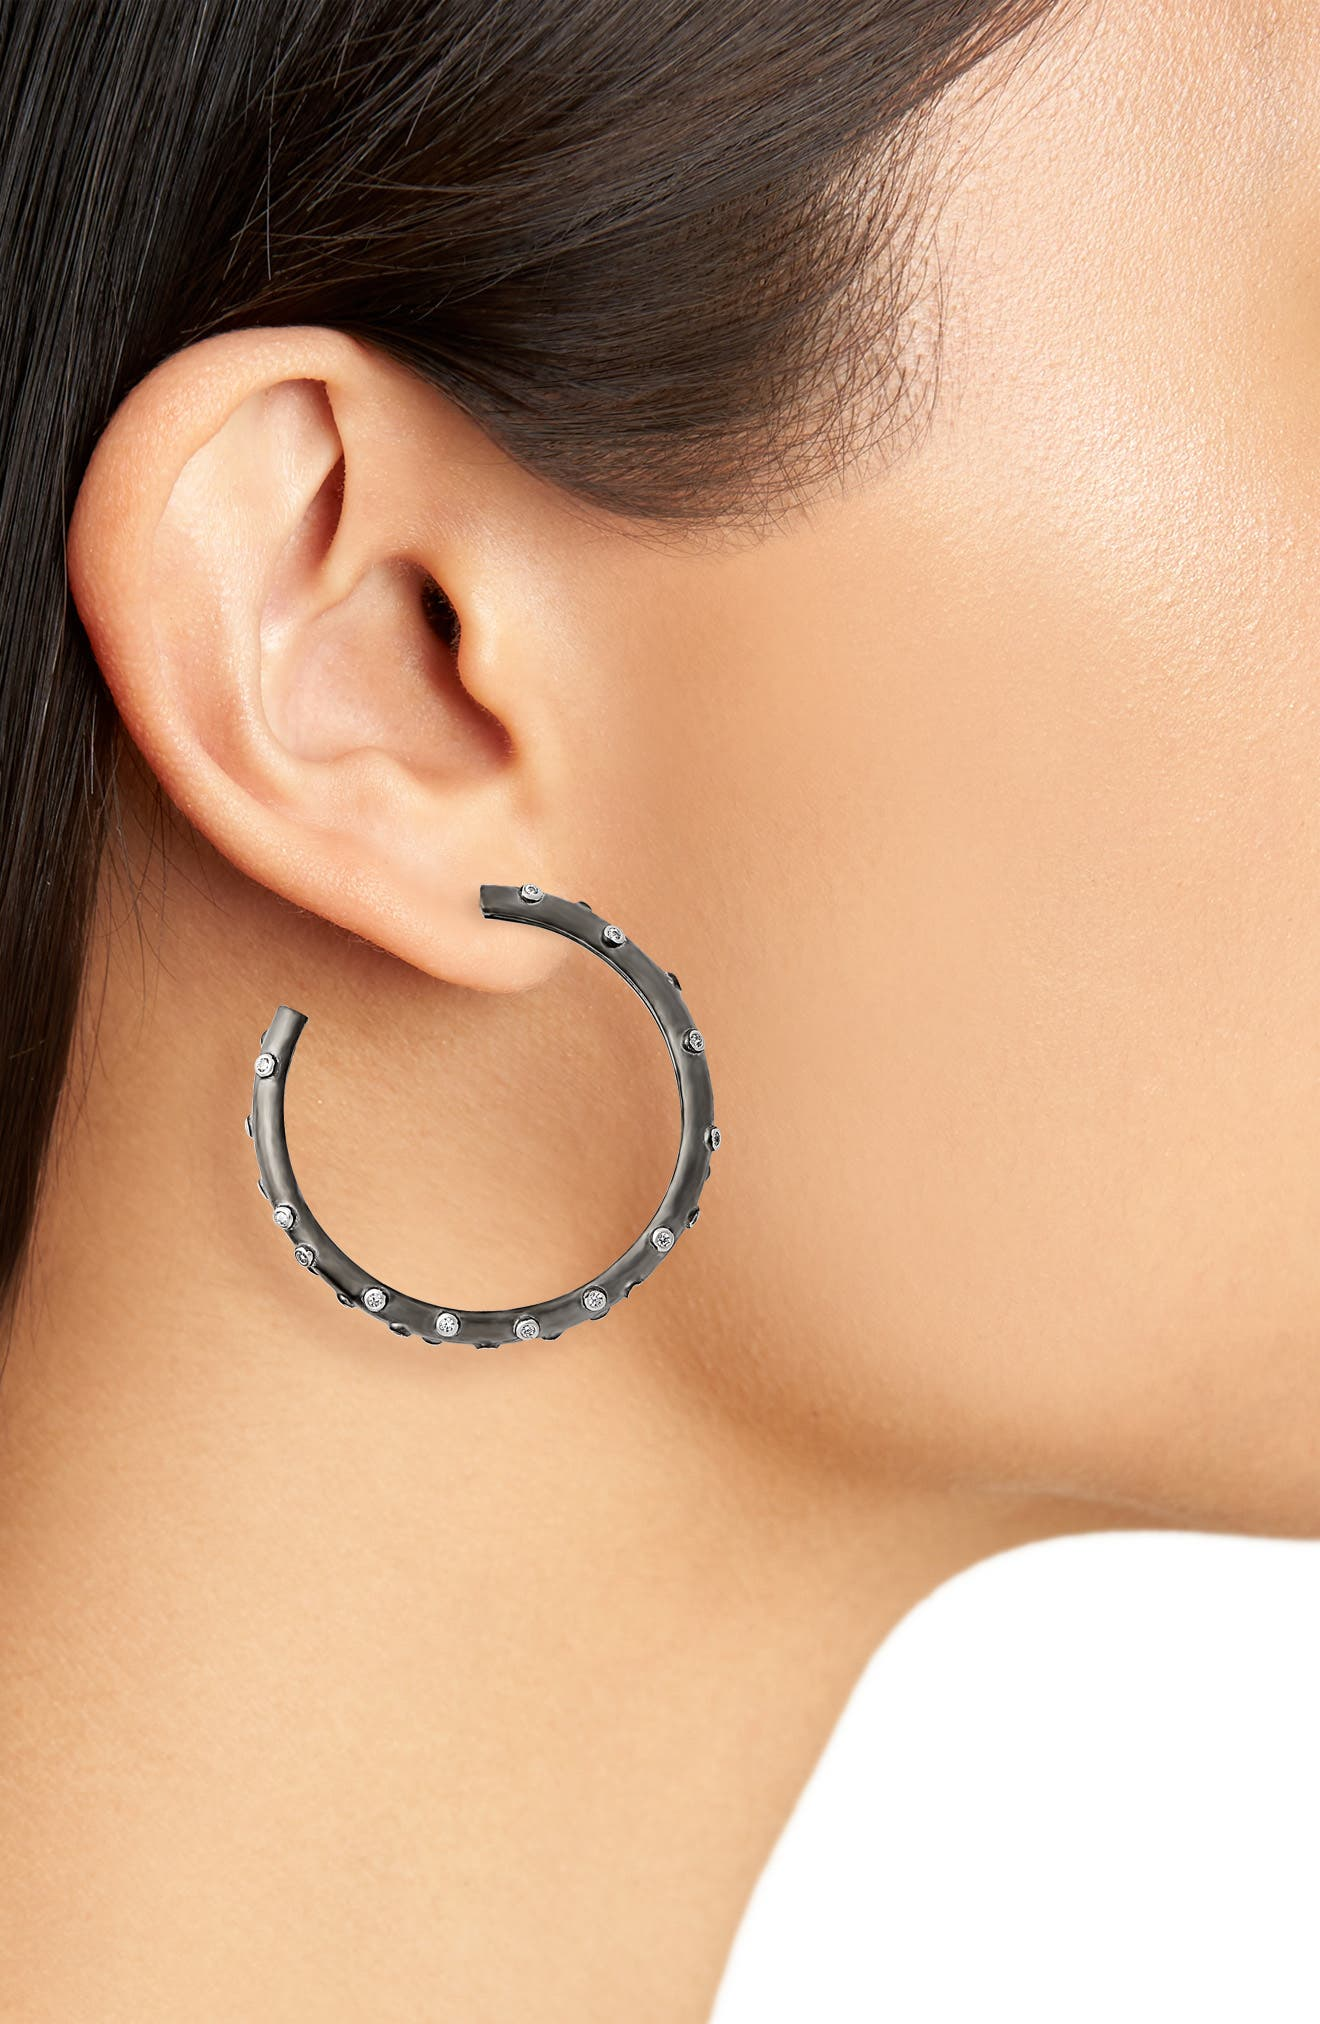 FREIDA ROTHMAN, Chunky C-Hoop Earrings, Alternate thumbnail 2, color, BLACK/ WHITE/ SILVER